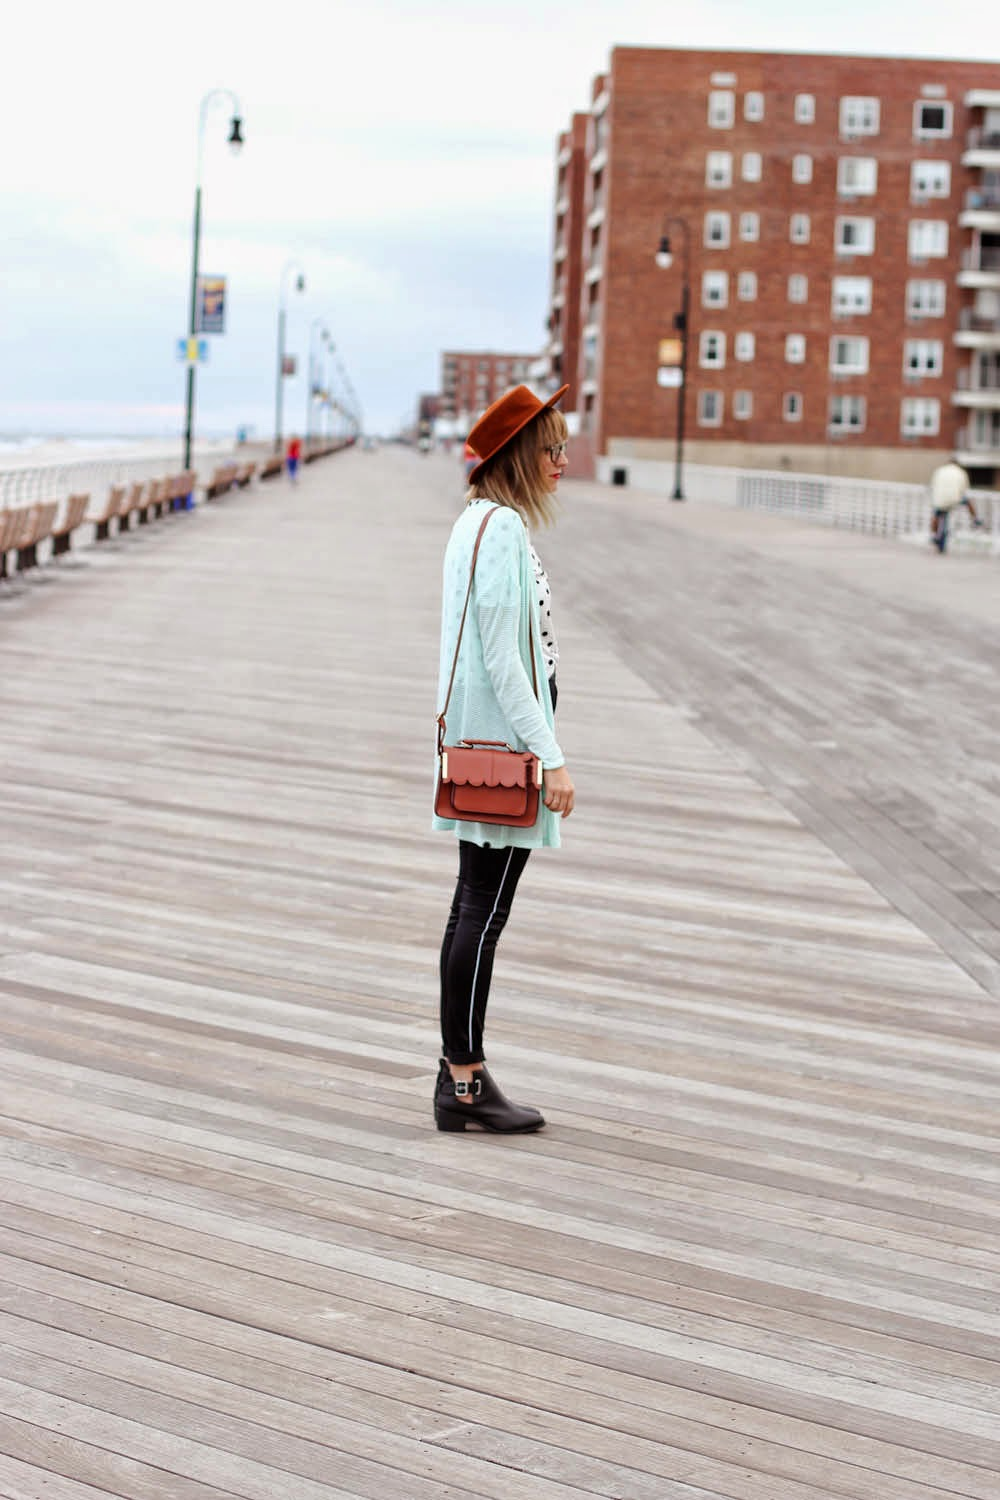 h&m high waist pants, long beach boardwalk, h&m fall campaign, nyc vintage fashion blog